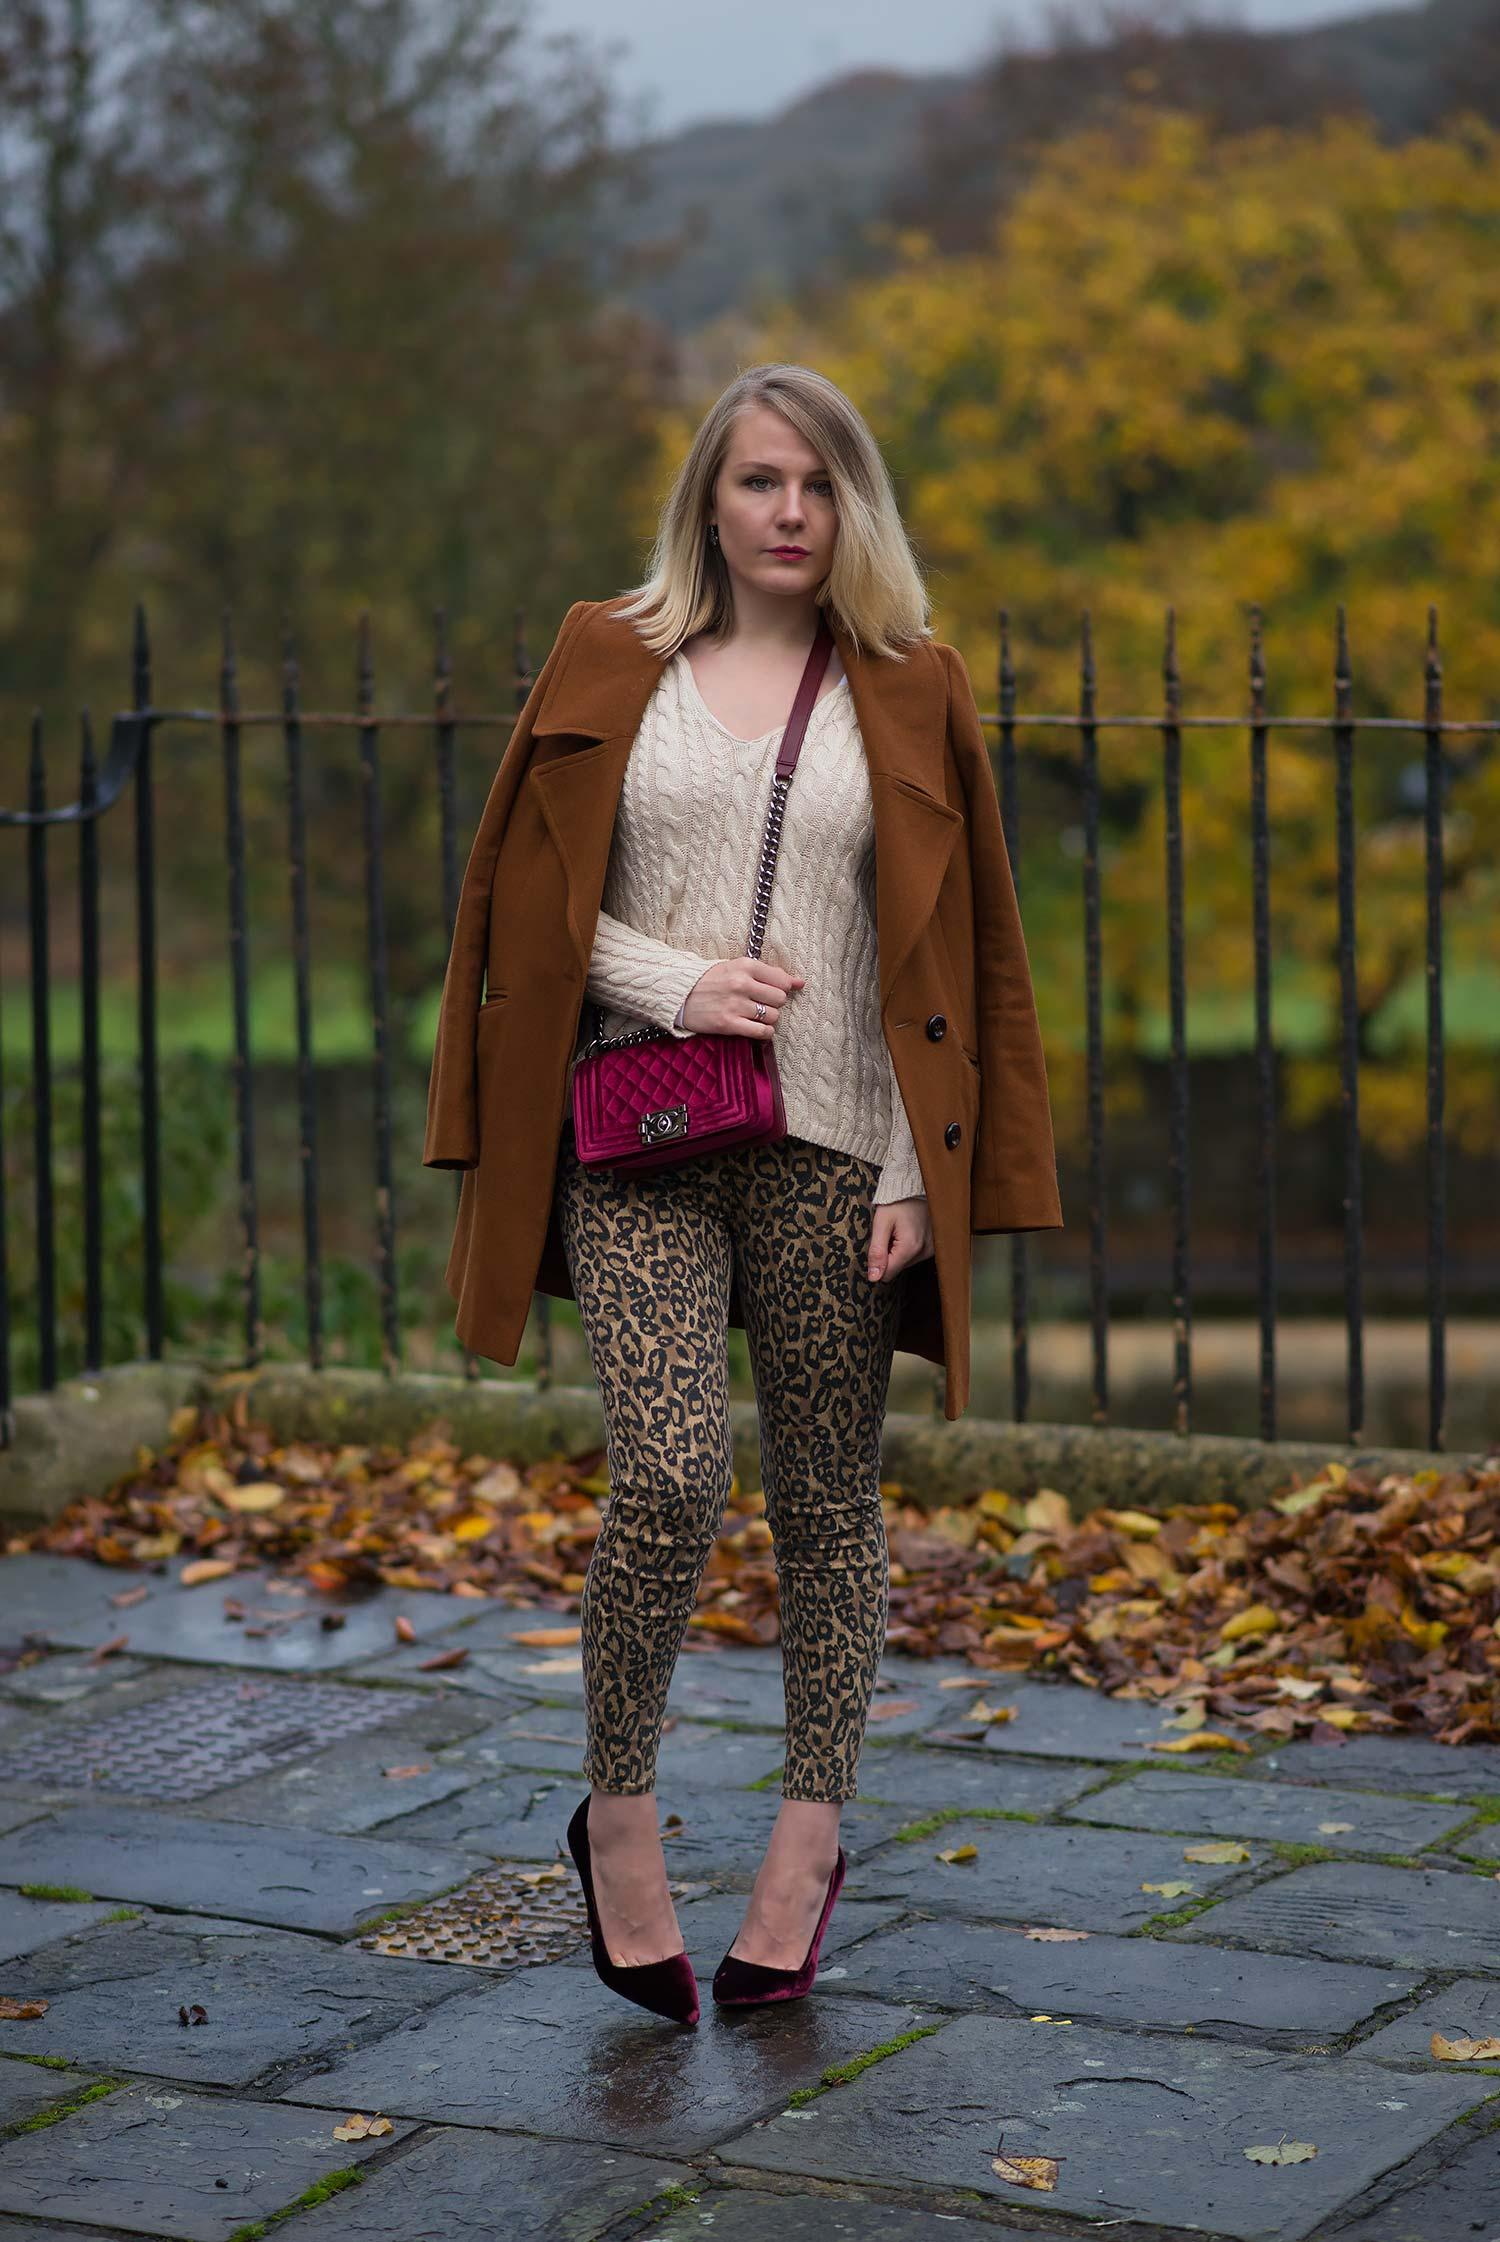 lorna-burford-fashion-blogger-leopard-j-brand-jeans